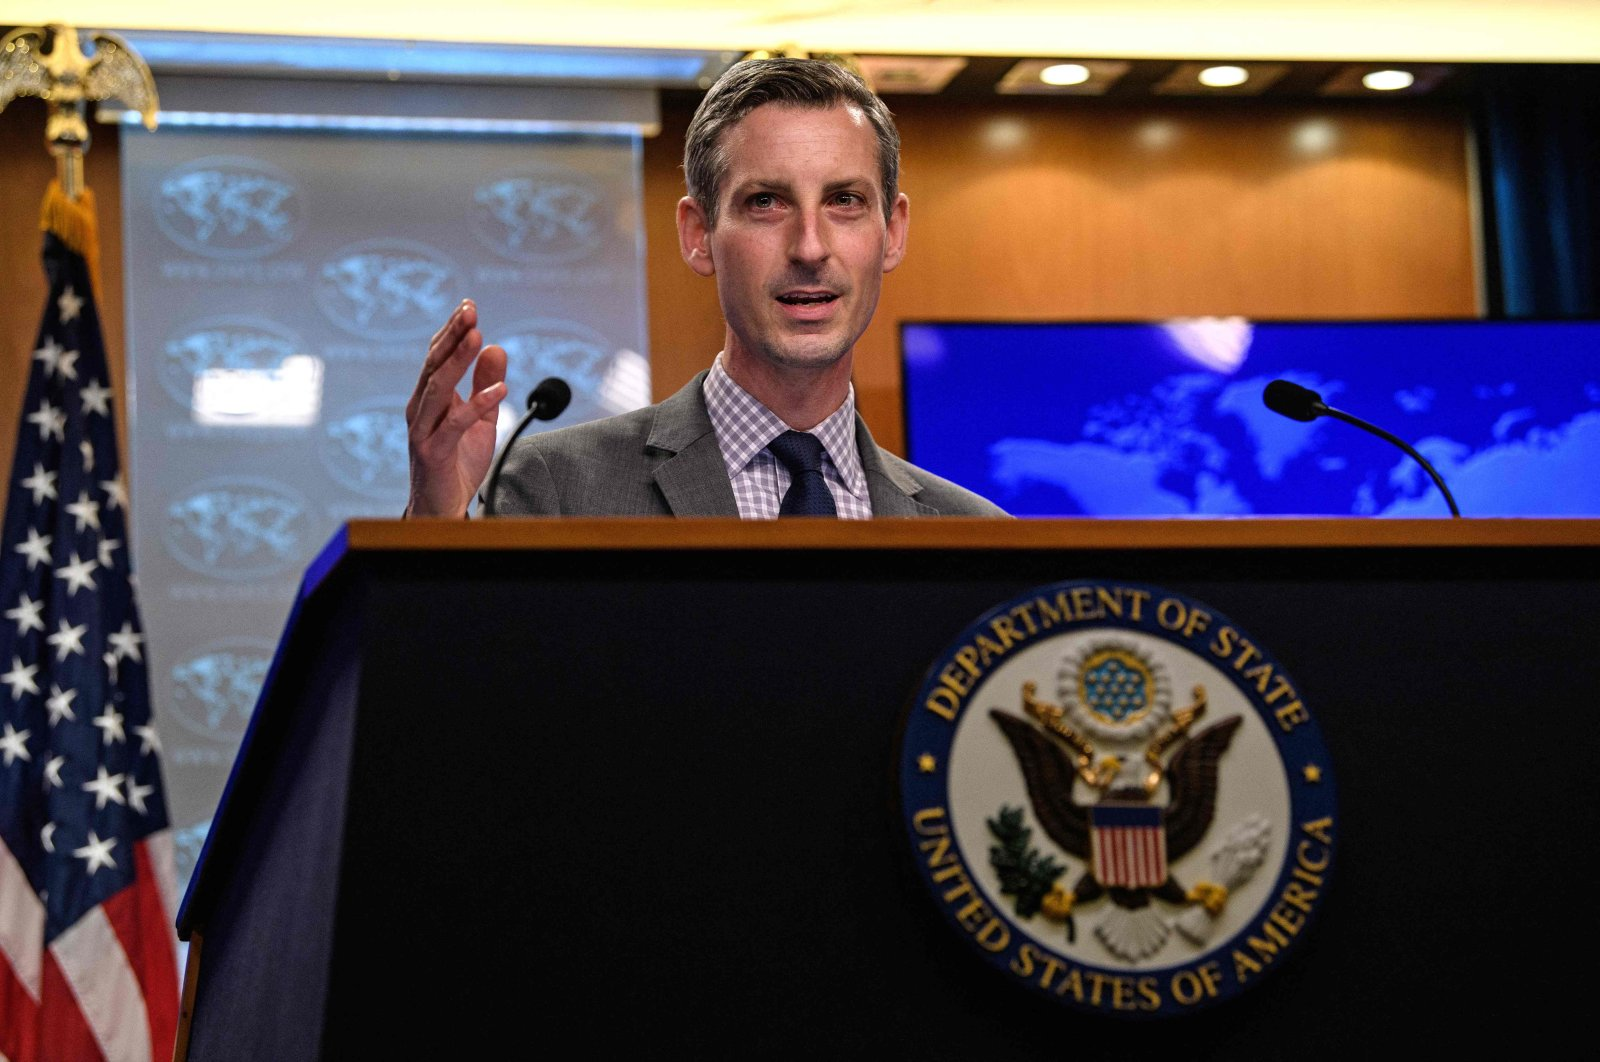 US State Department spokesman Ned Price gestures as he speaks during the daily press briefing at the State Department in Washington, DC, on February 25, 2021. (AFP Photo)